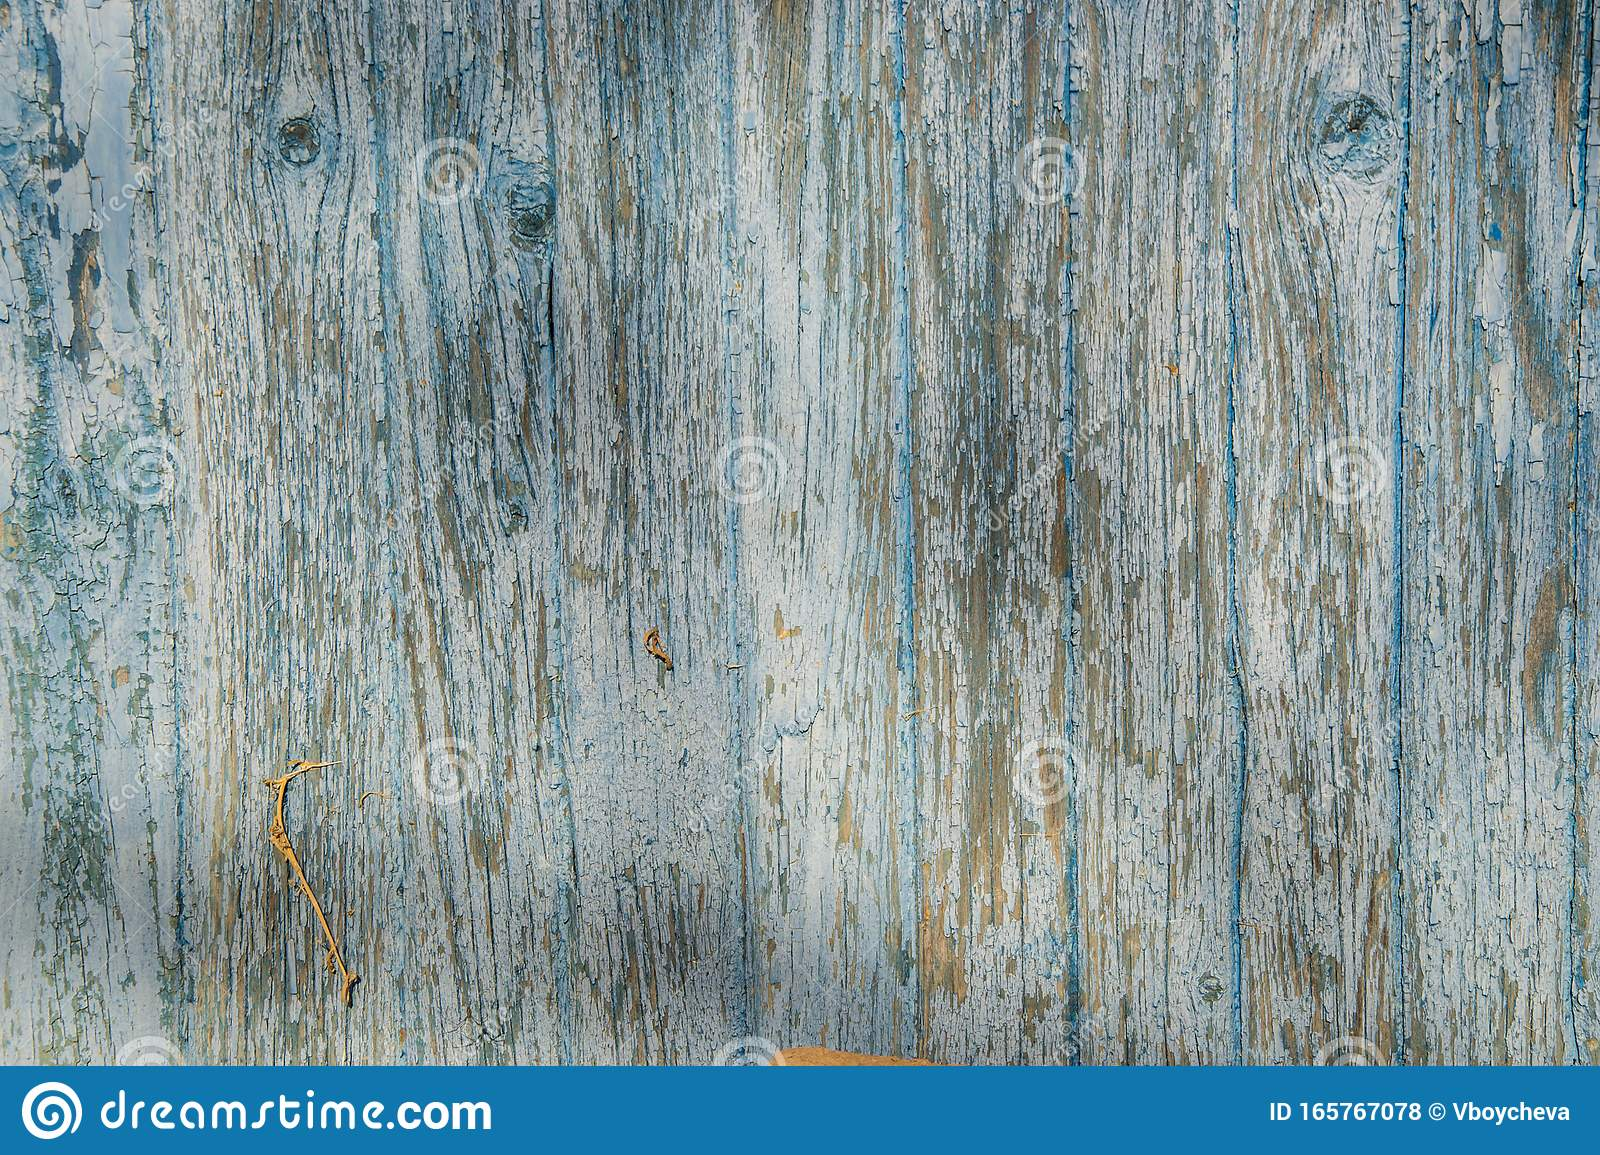 https www dreamstime com wooden background floor wall tiles grunge texture stains natural backdrop blue old wood planks abstract interior design image165767078